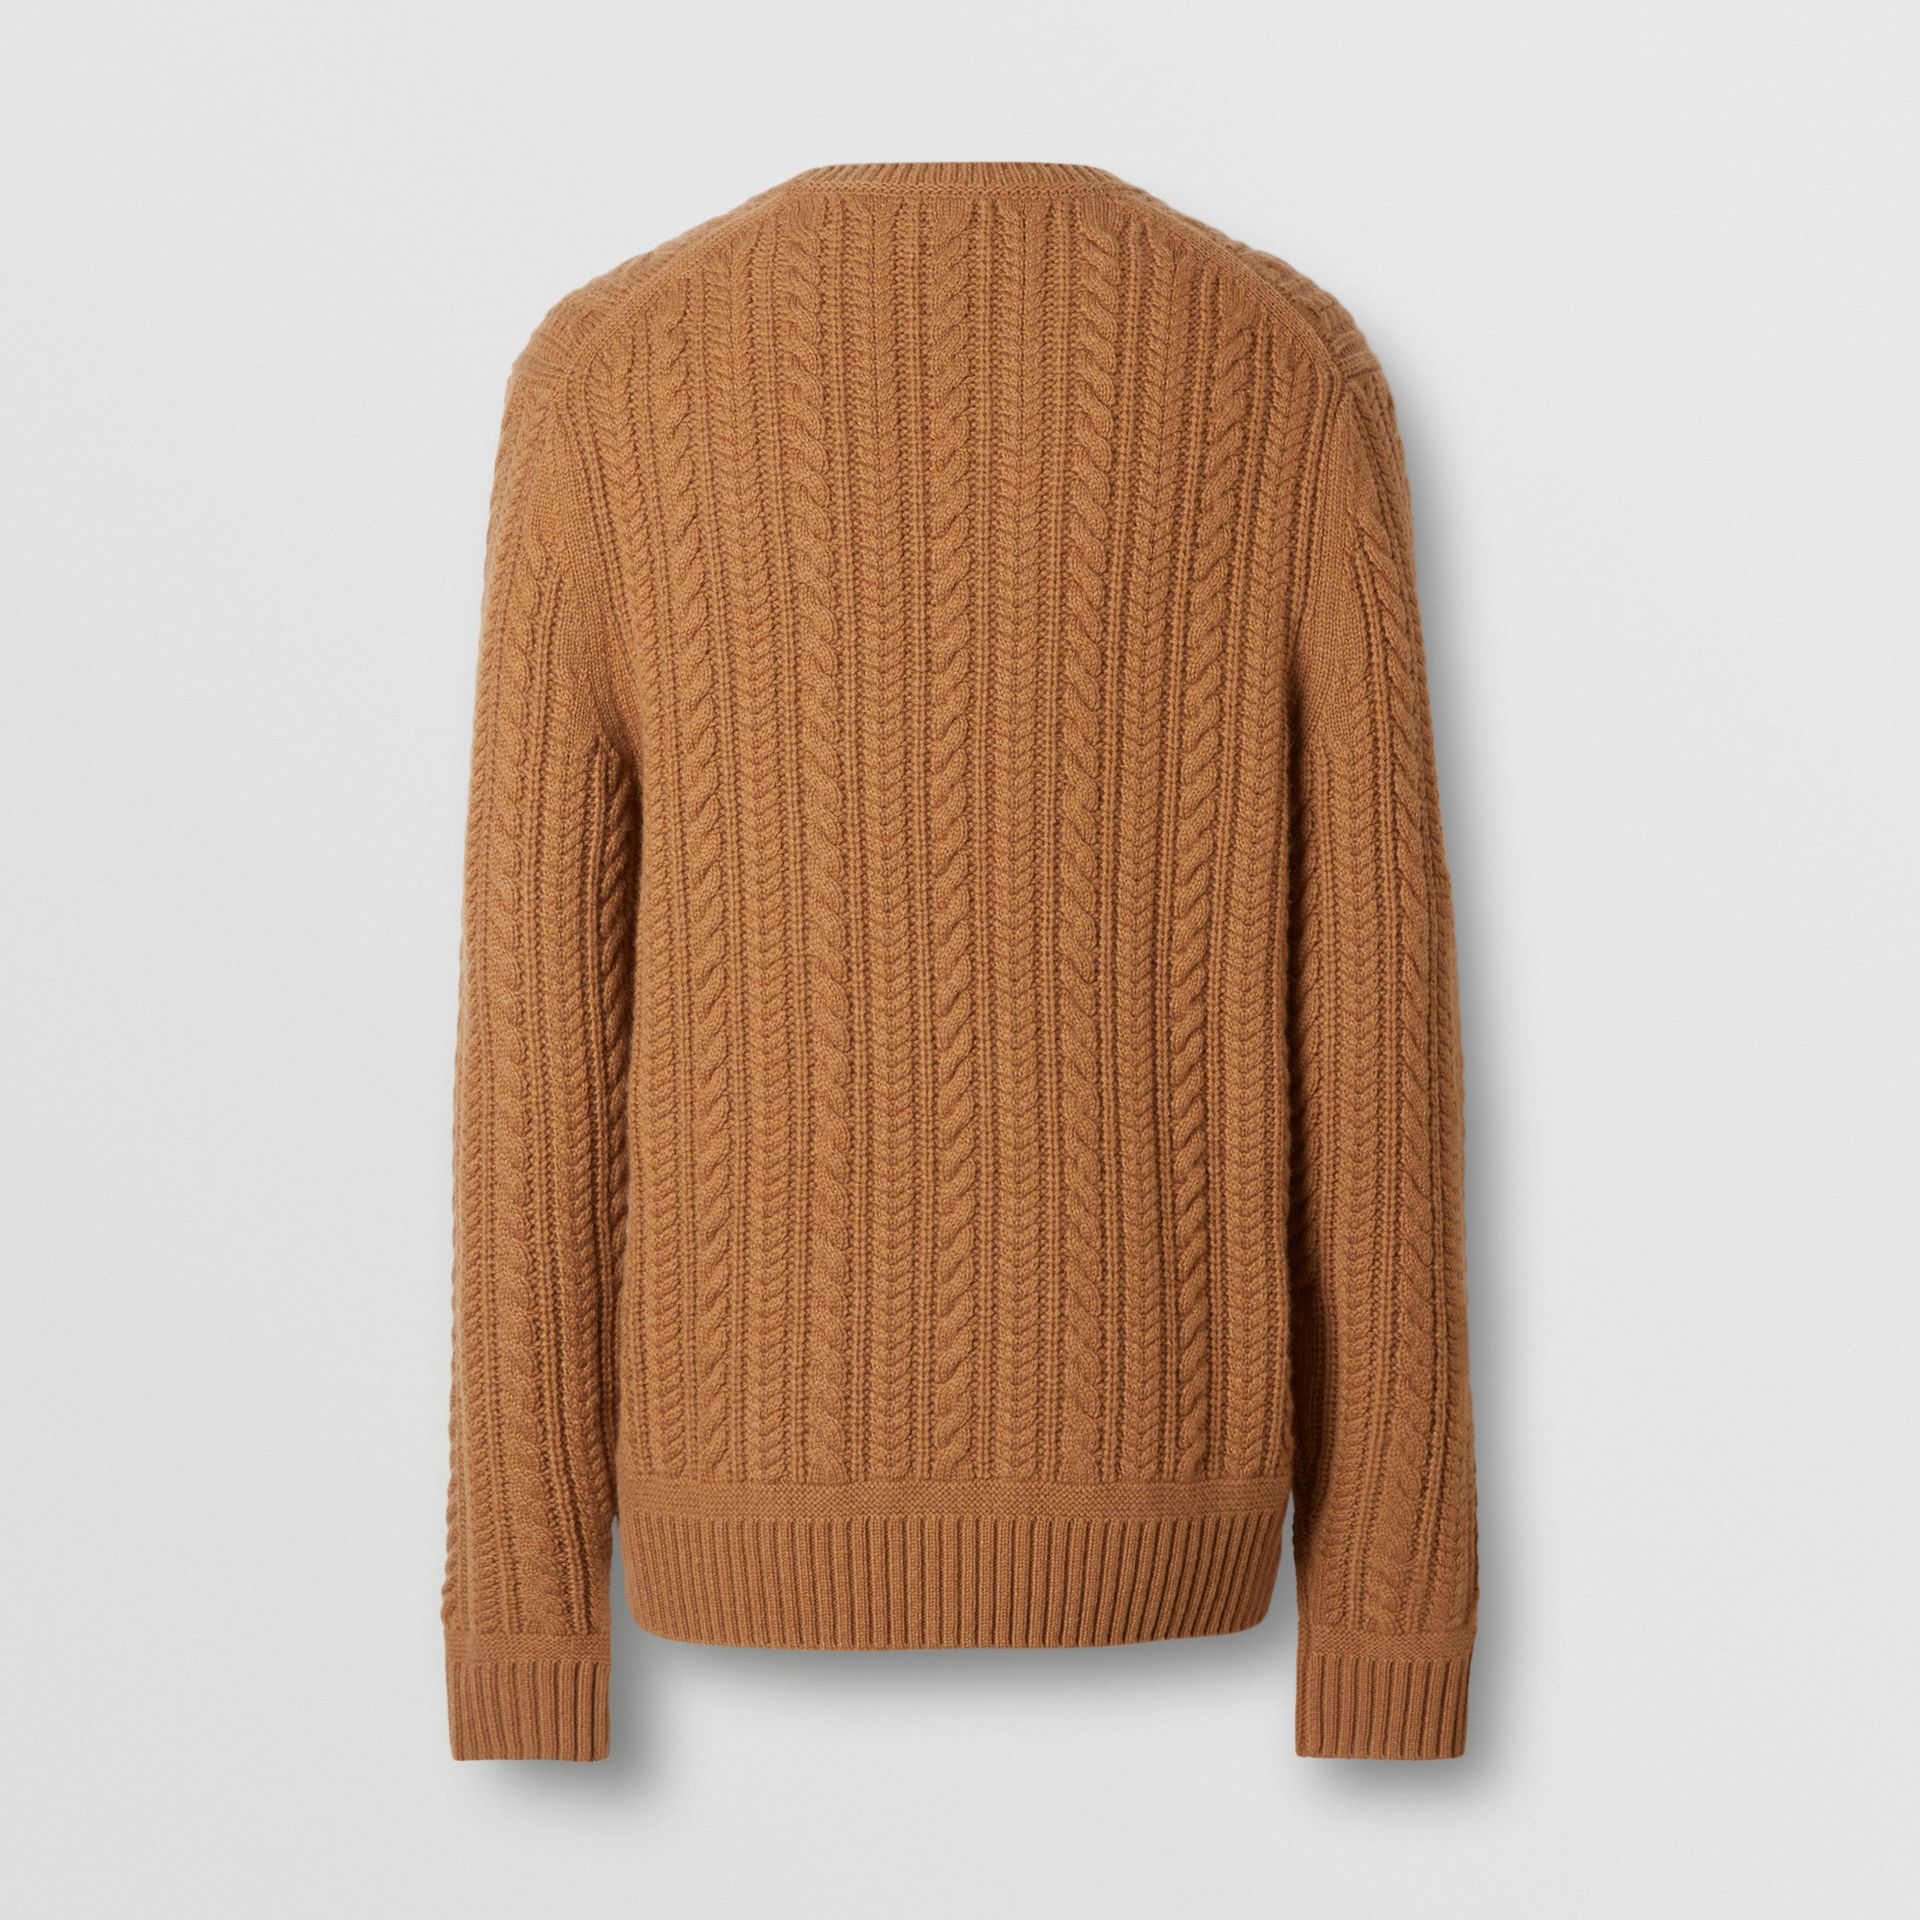 Cable Knit Cashmere Sweater in Maple - Men | Burberry - gallery image 6